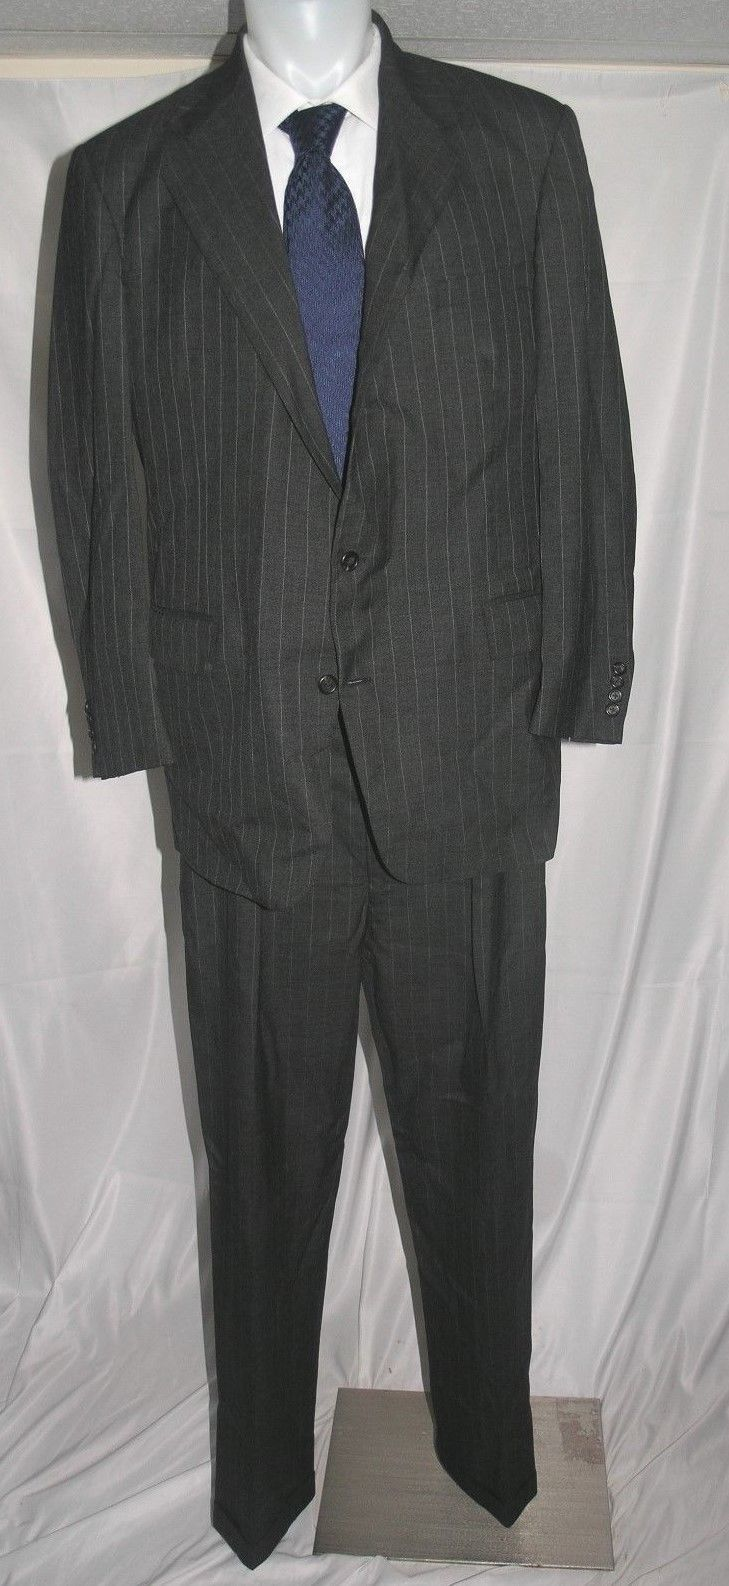 Polo Ralph Lauren Vintage Two Button American Made Suit 46 L 40 x 34